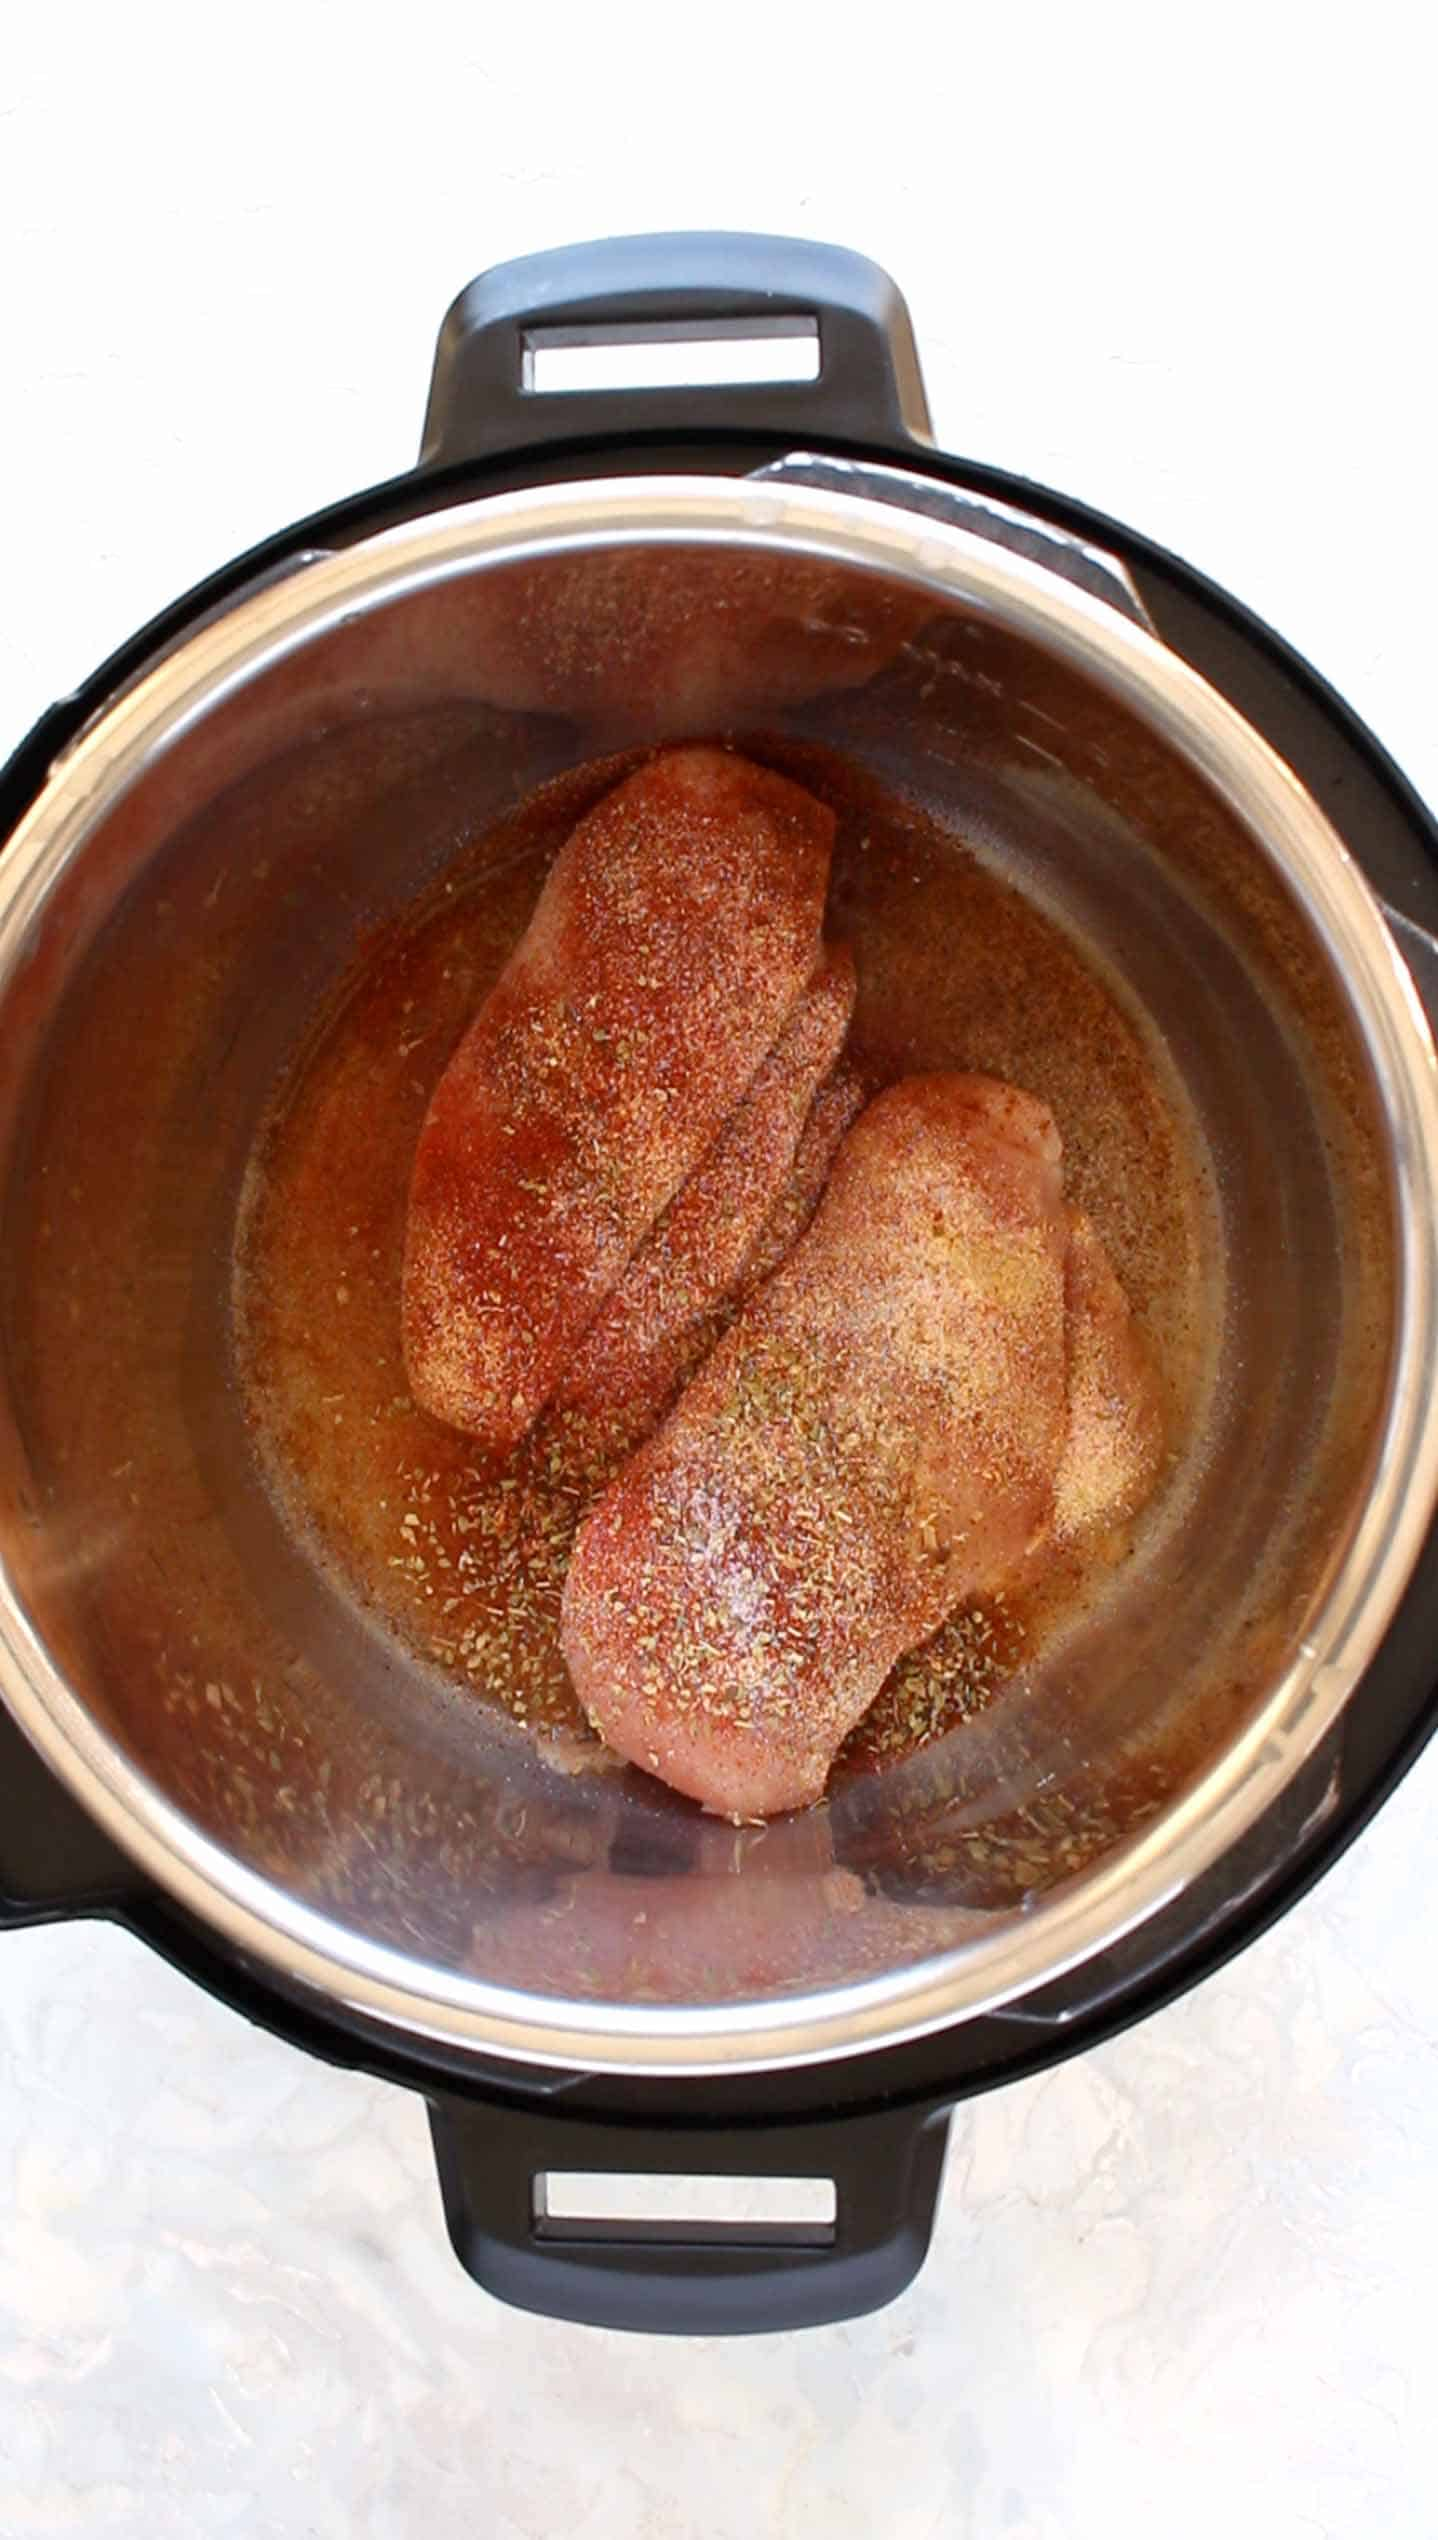 Before adding chicken seasoning, add chicken breast and 1/4 cup water to the instant pot.